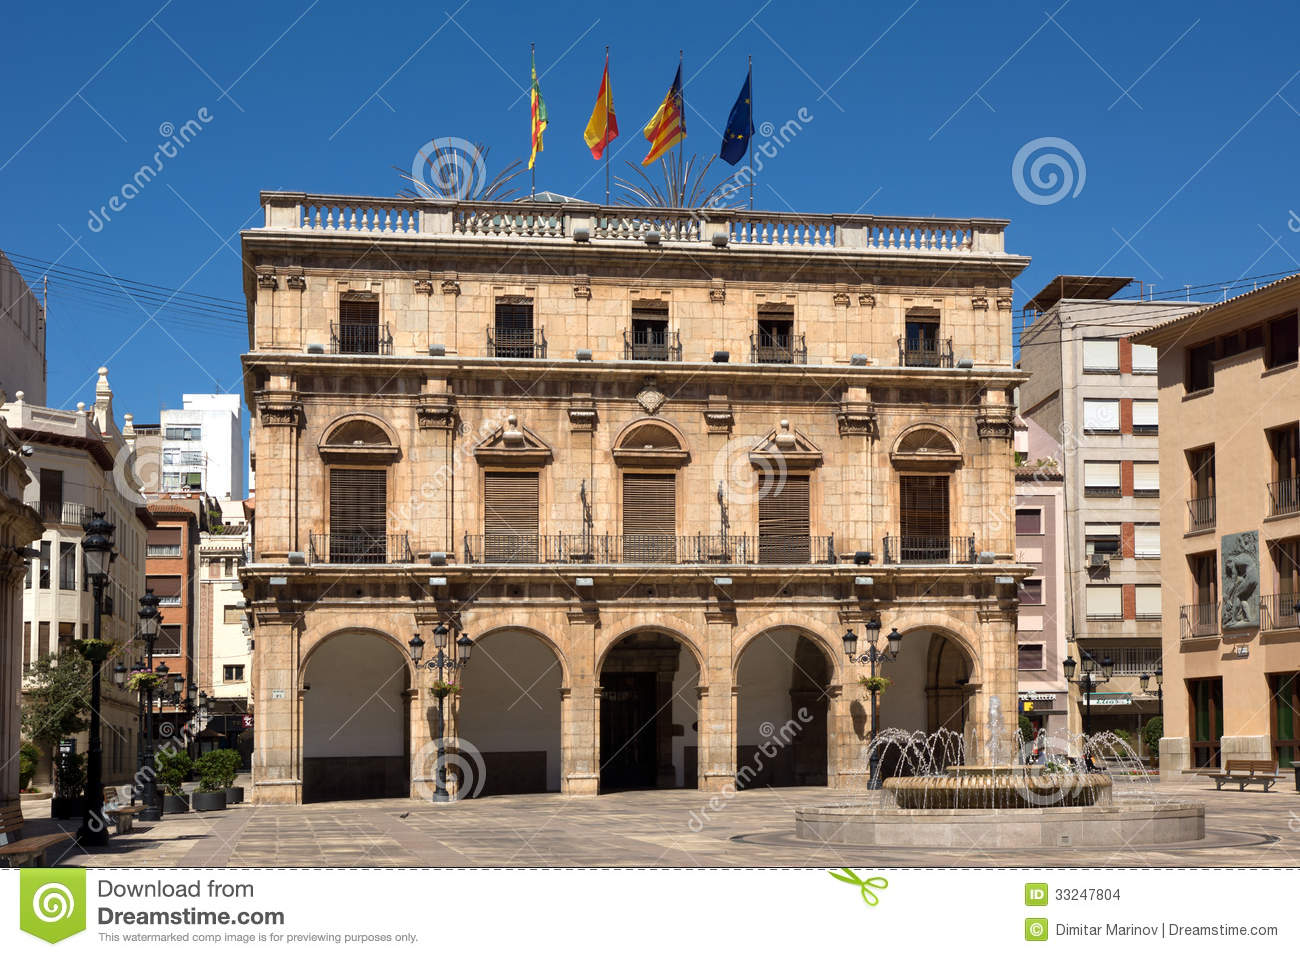 Castellon de la Plana Spain  city images : City hall of Castellon de la Plana, Spain.